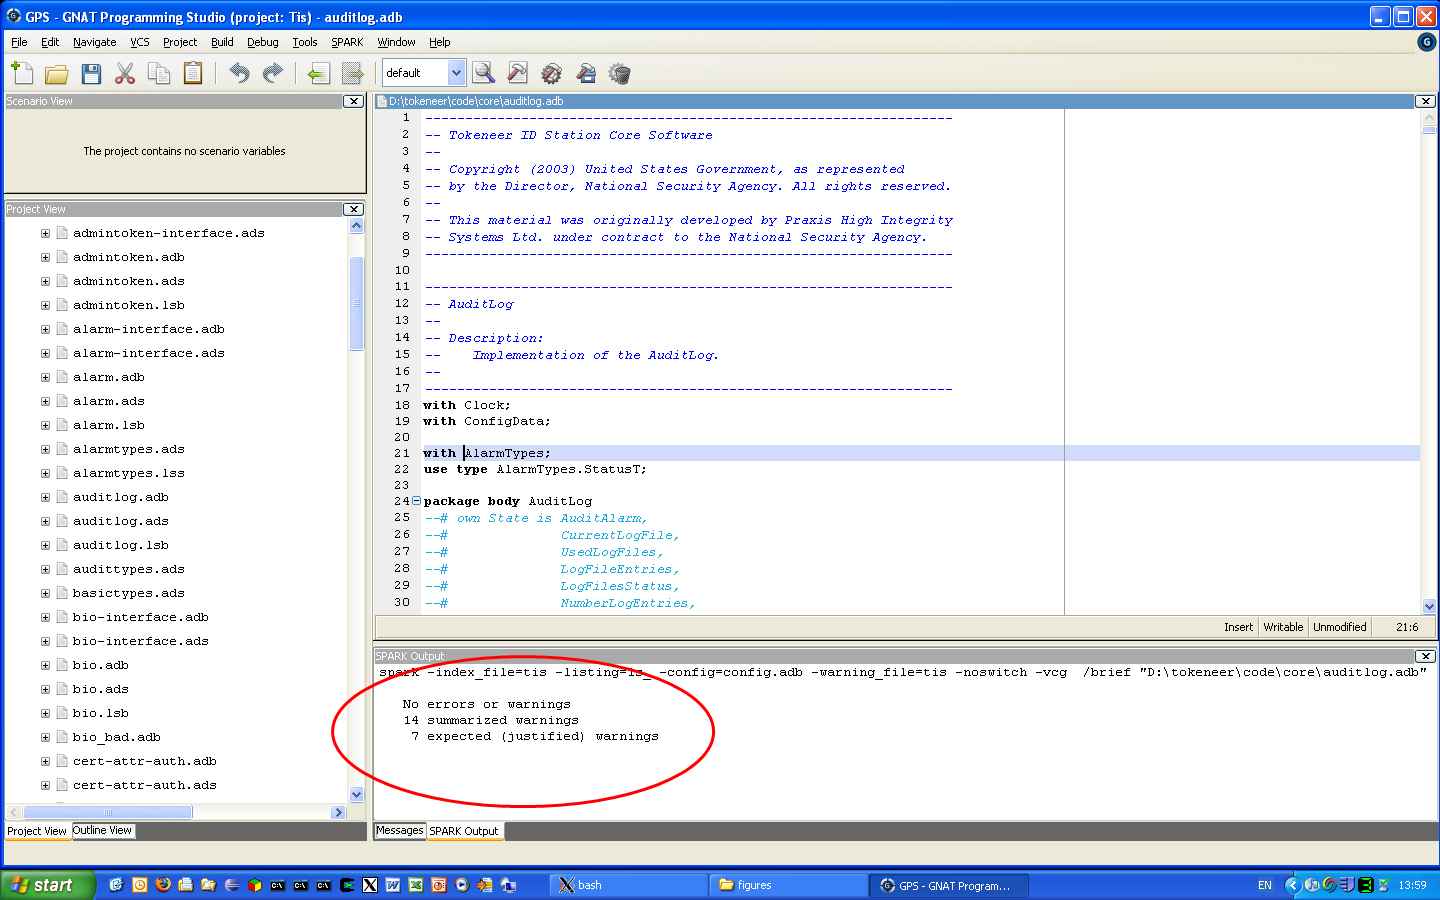 GNAT Programming Studio (GPS) picture or screenshot